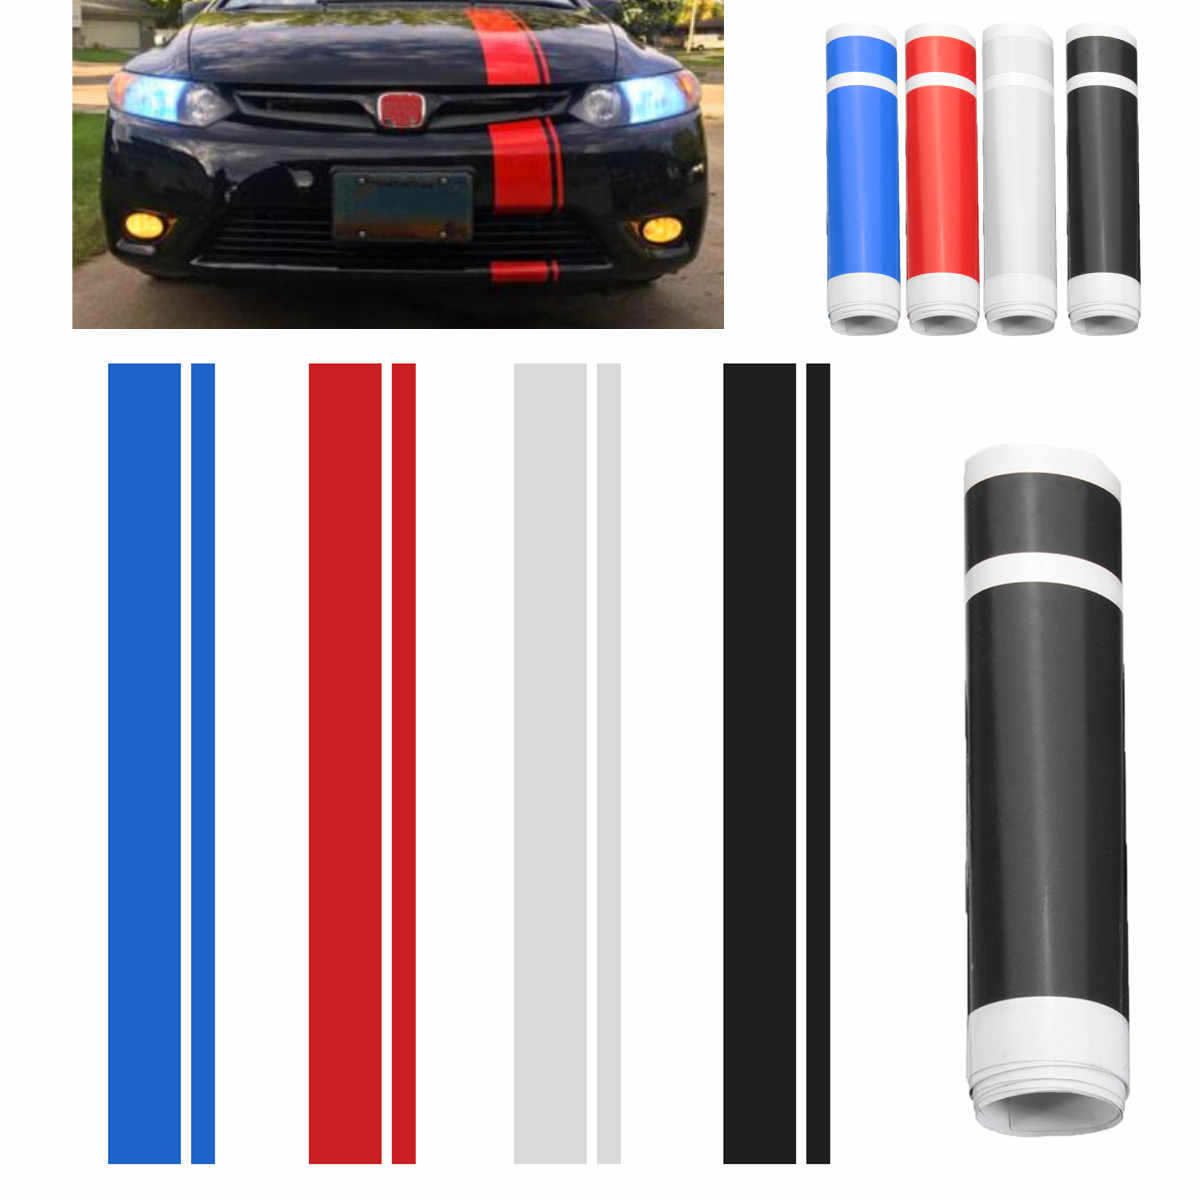 Universal Racing Stripe Car Decals And Stickers 1x 6 Hood Stripe Auto  Graphic decal Vinyl Car Truck Vehicle Body Racing Stripe